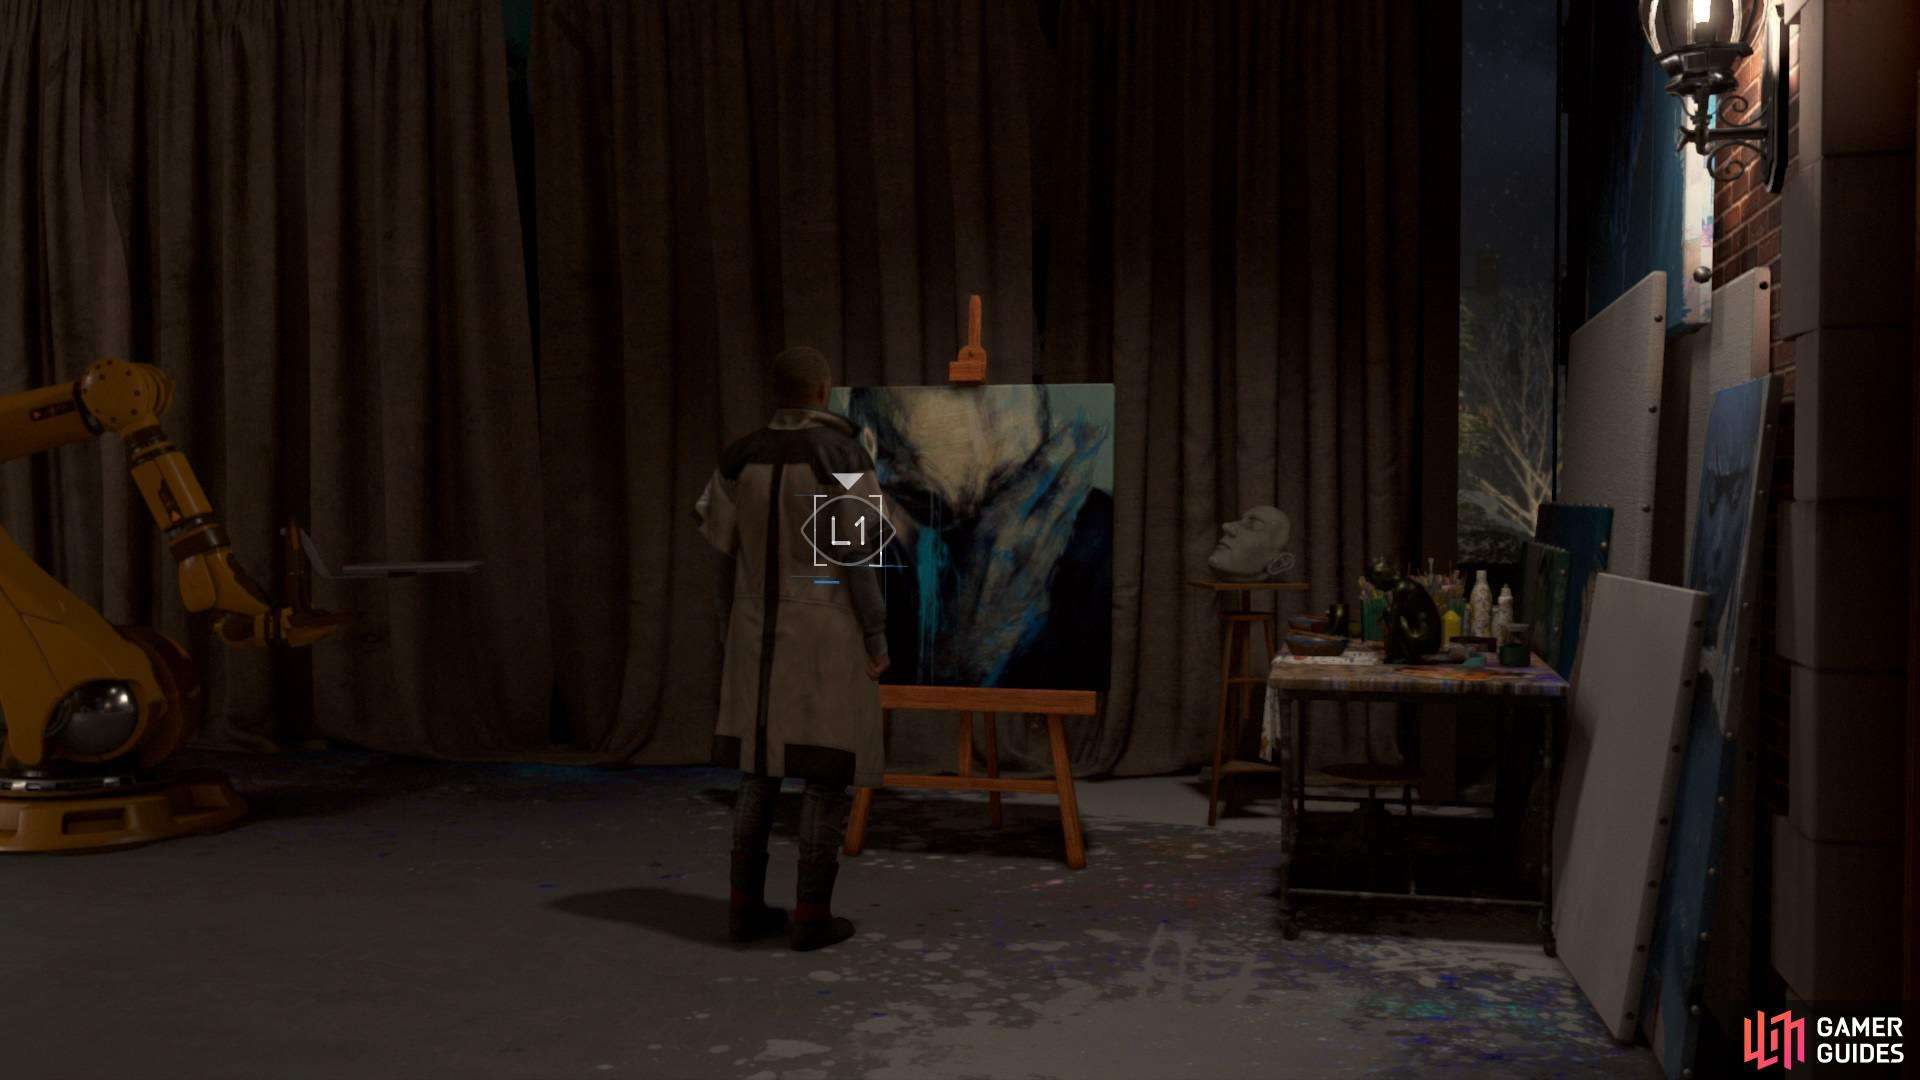 Look at the painting you made during 'The Painter'